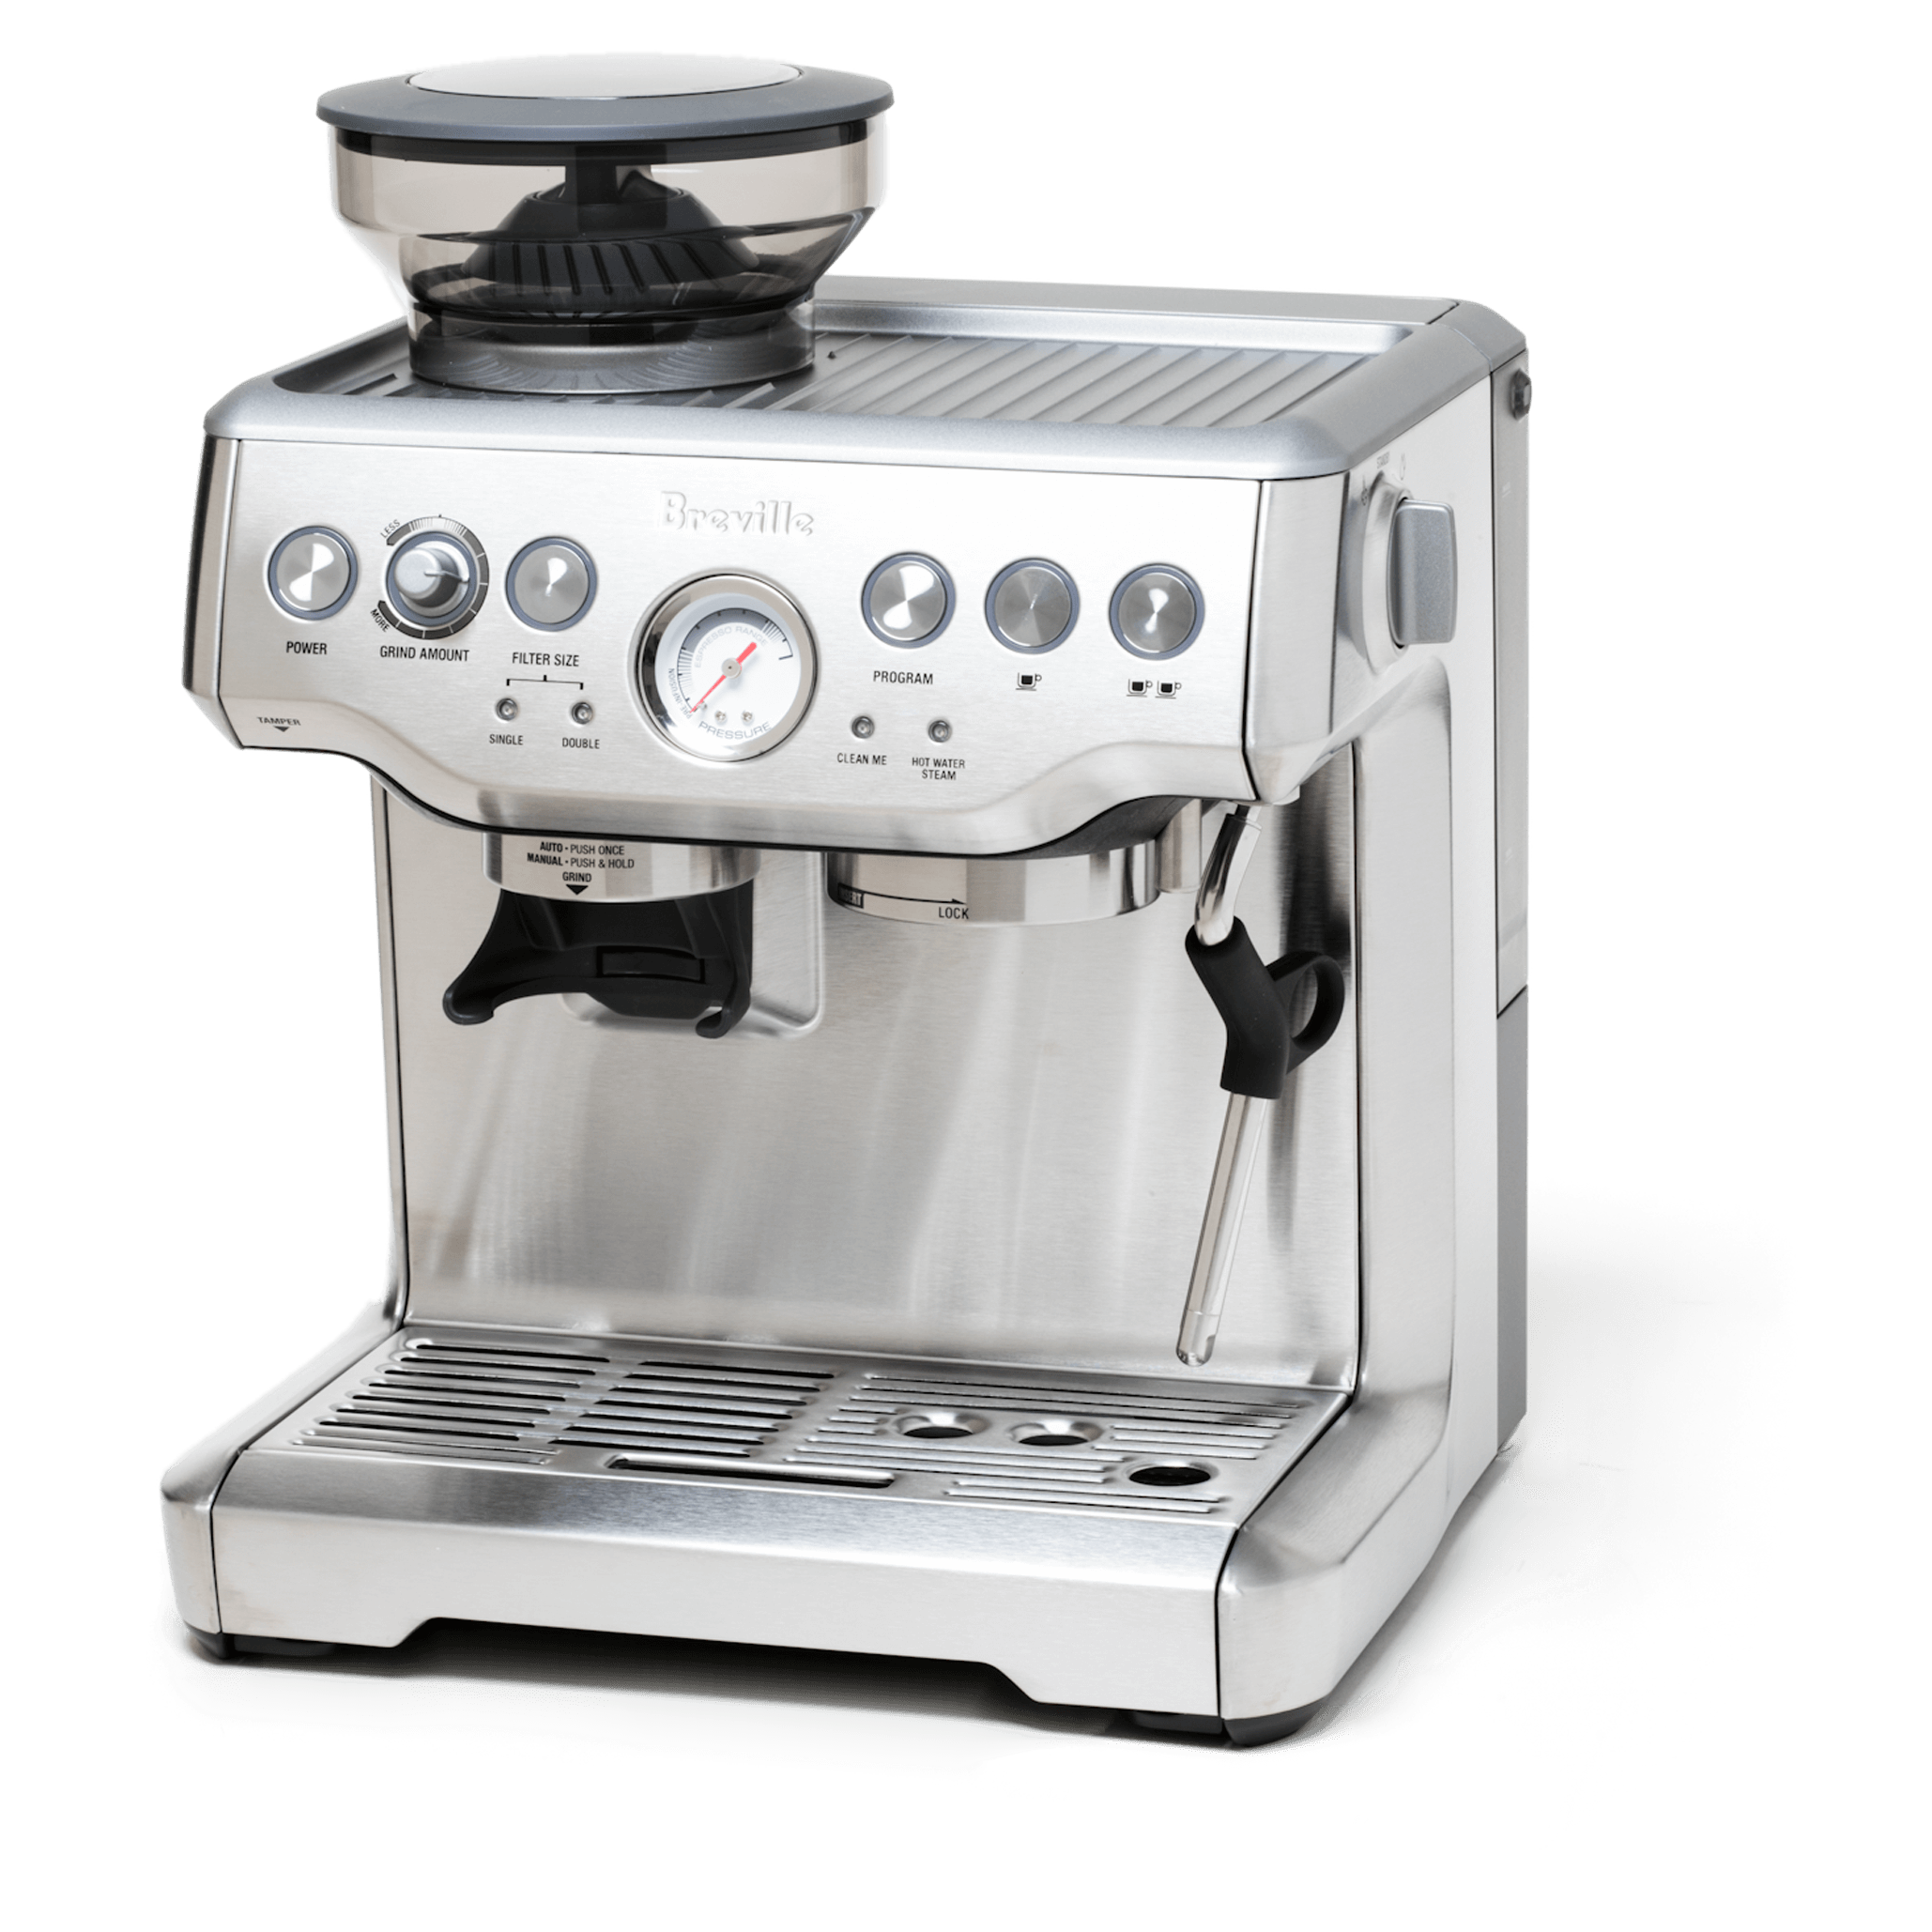 Brew The Perfect Coffee At Home Rok Presso Manual Espresso Maker Classic